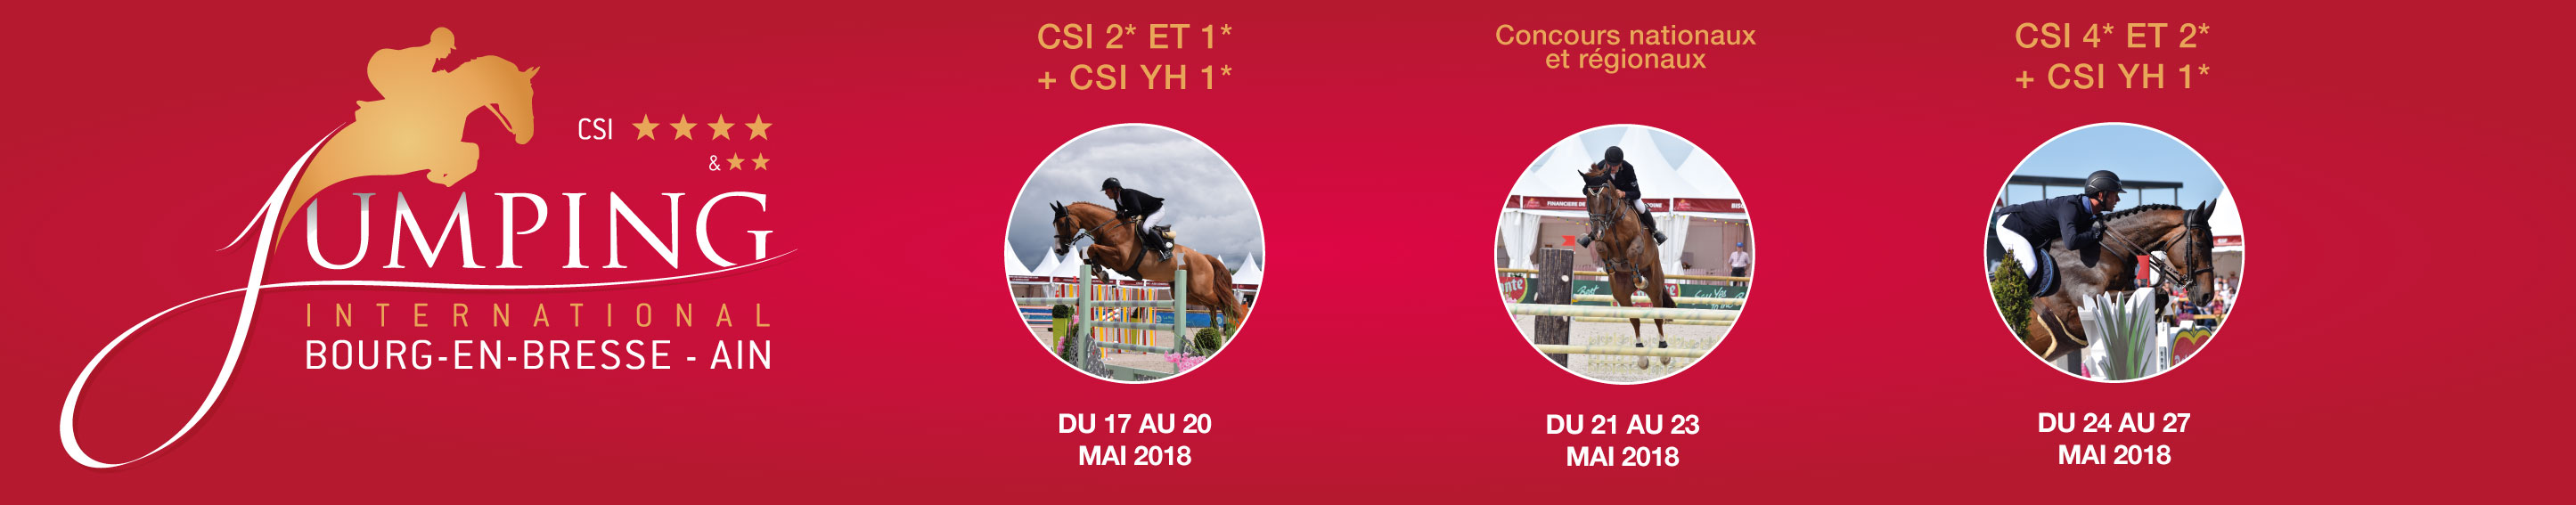 Jumping International de Bourg-en-Bresse 2018 / 17/05/2018 - 27/05/2018